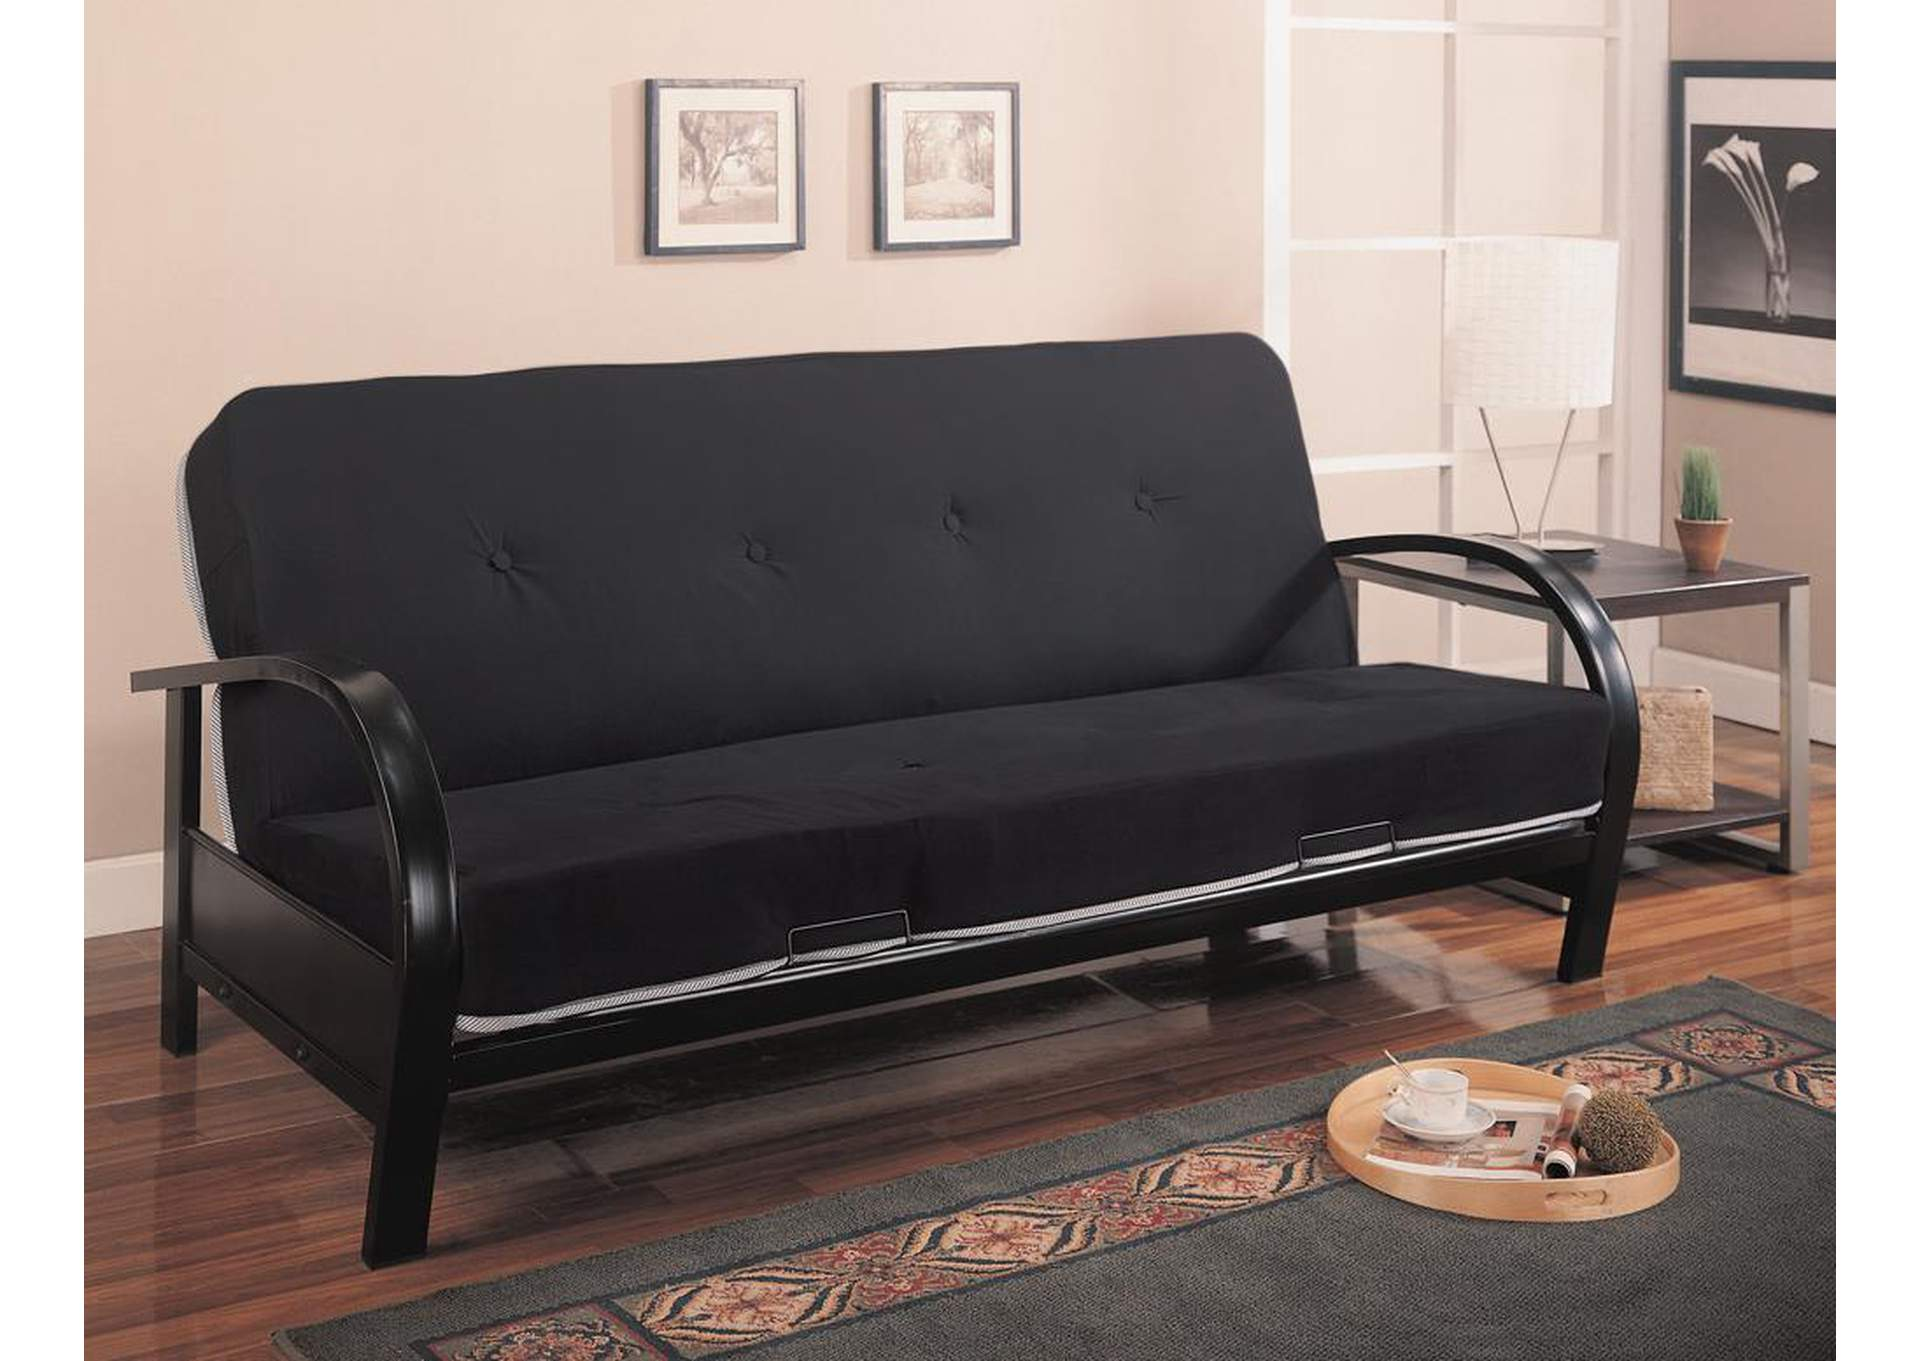 furniture direct bronx manhattan new york city ny futon frame